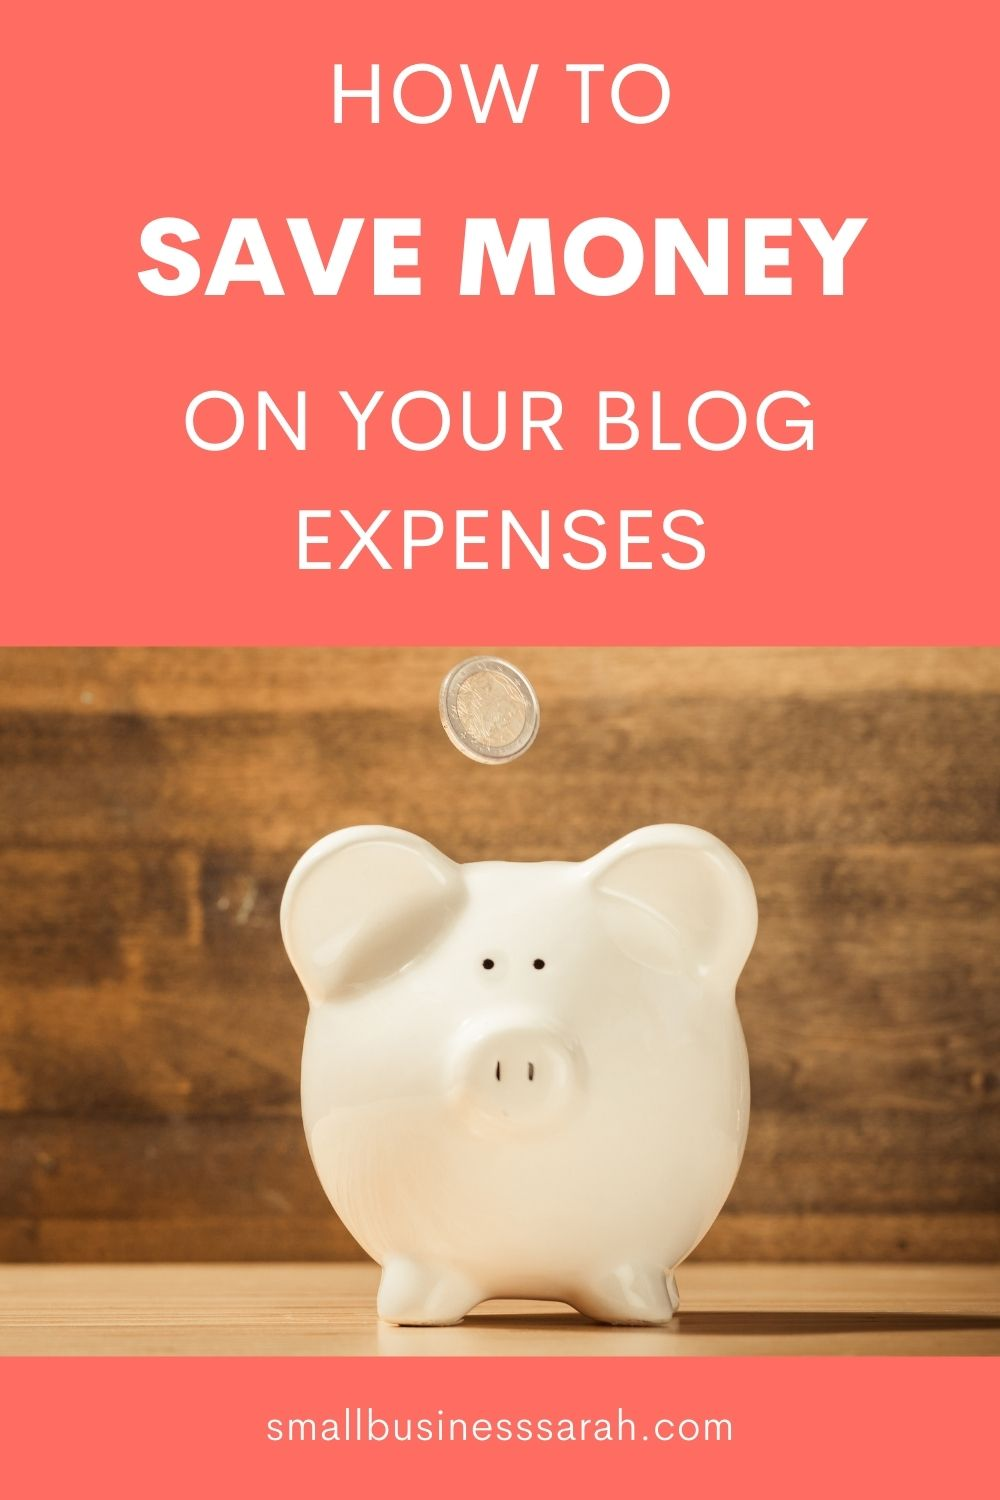 Wondering how you can save money on your blog expenses? Check out this post that shows you have keeping good records can save you money.